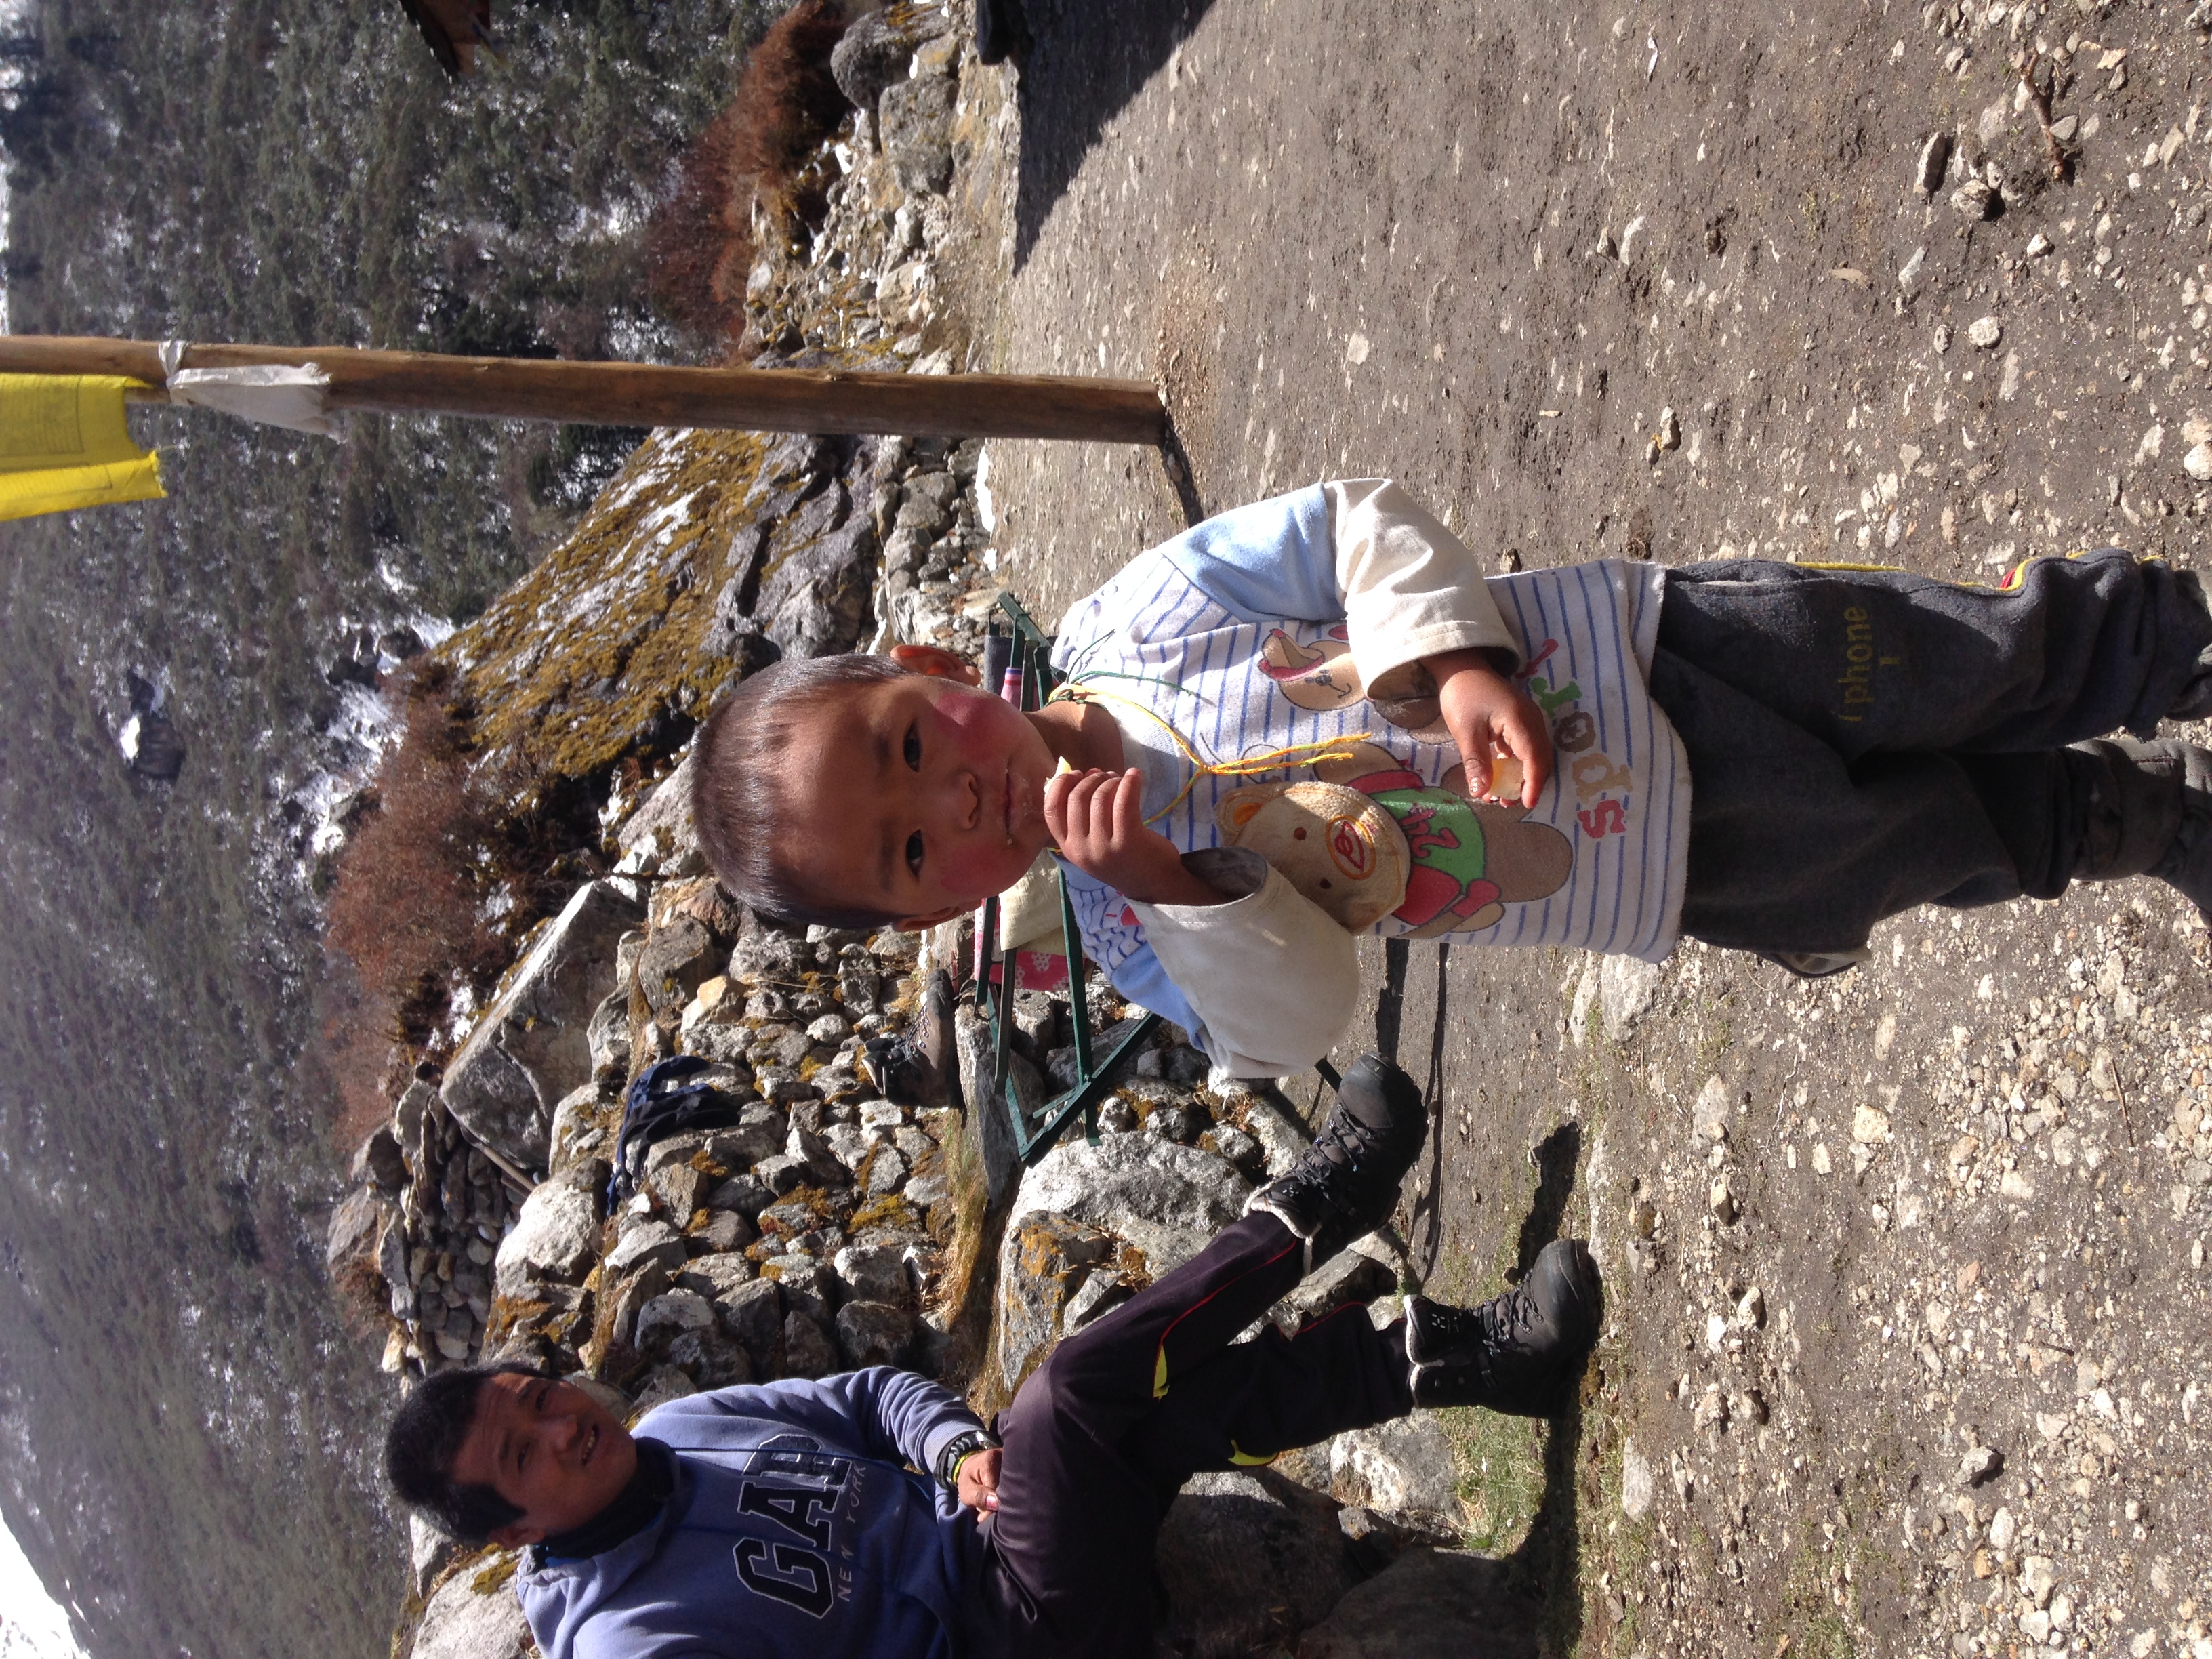 A kid eating yak cheese at our highest teahouse in Cheram.